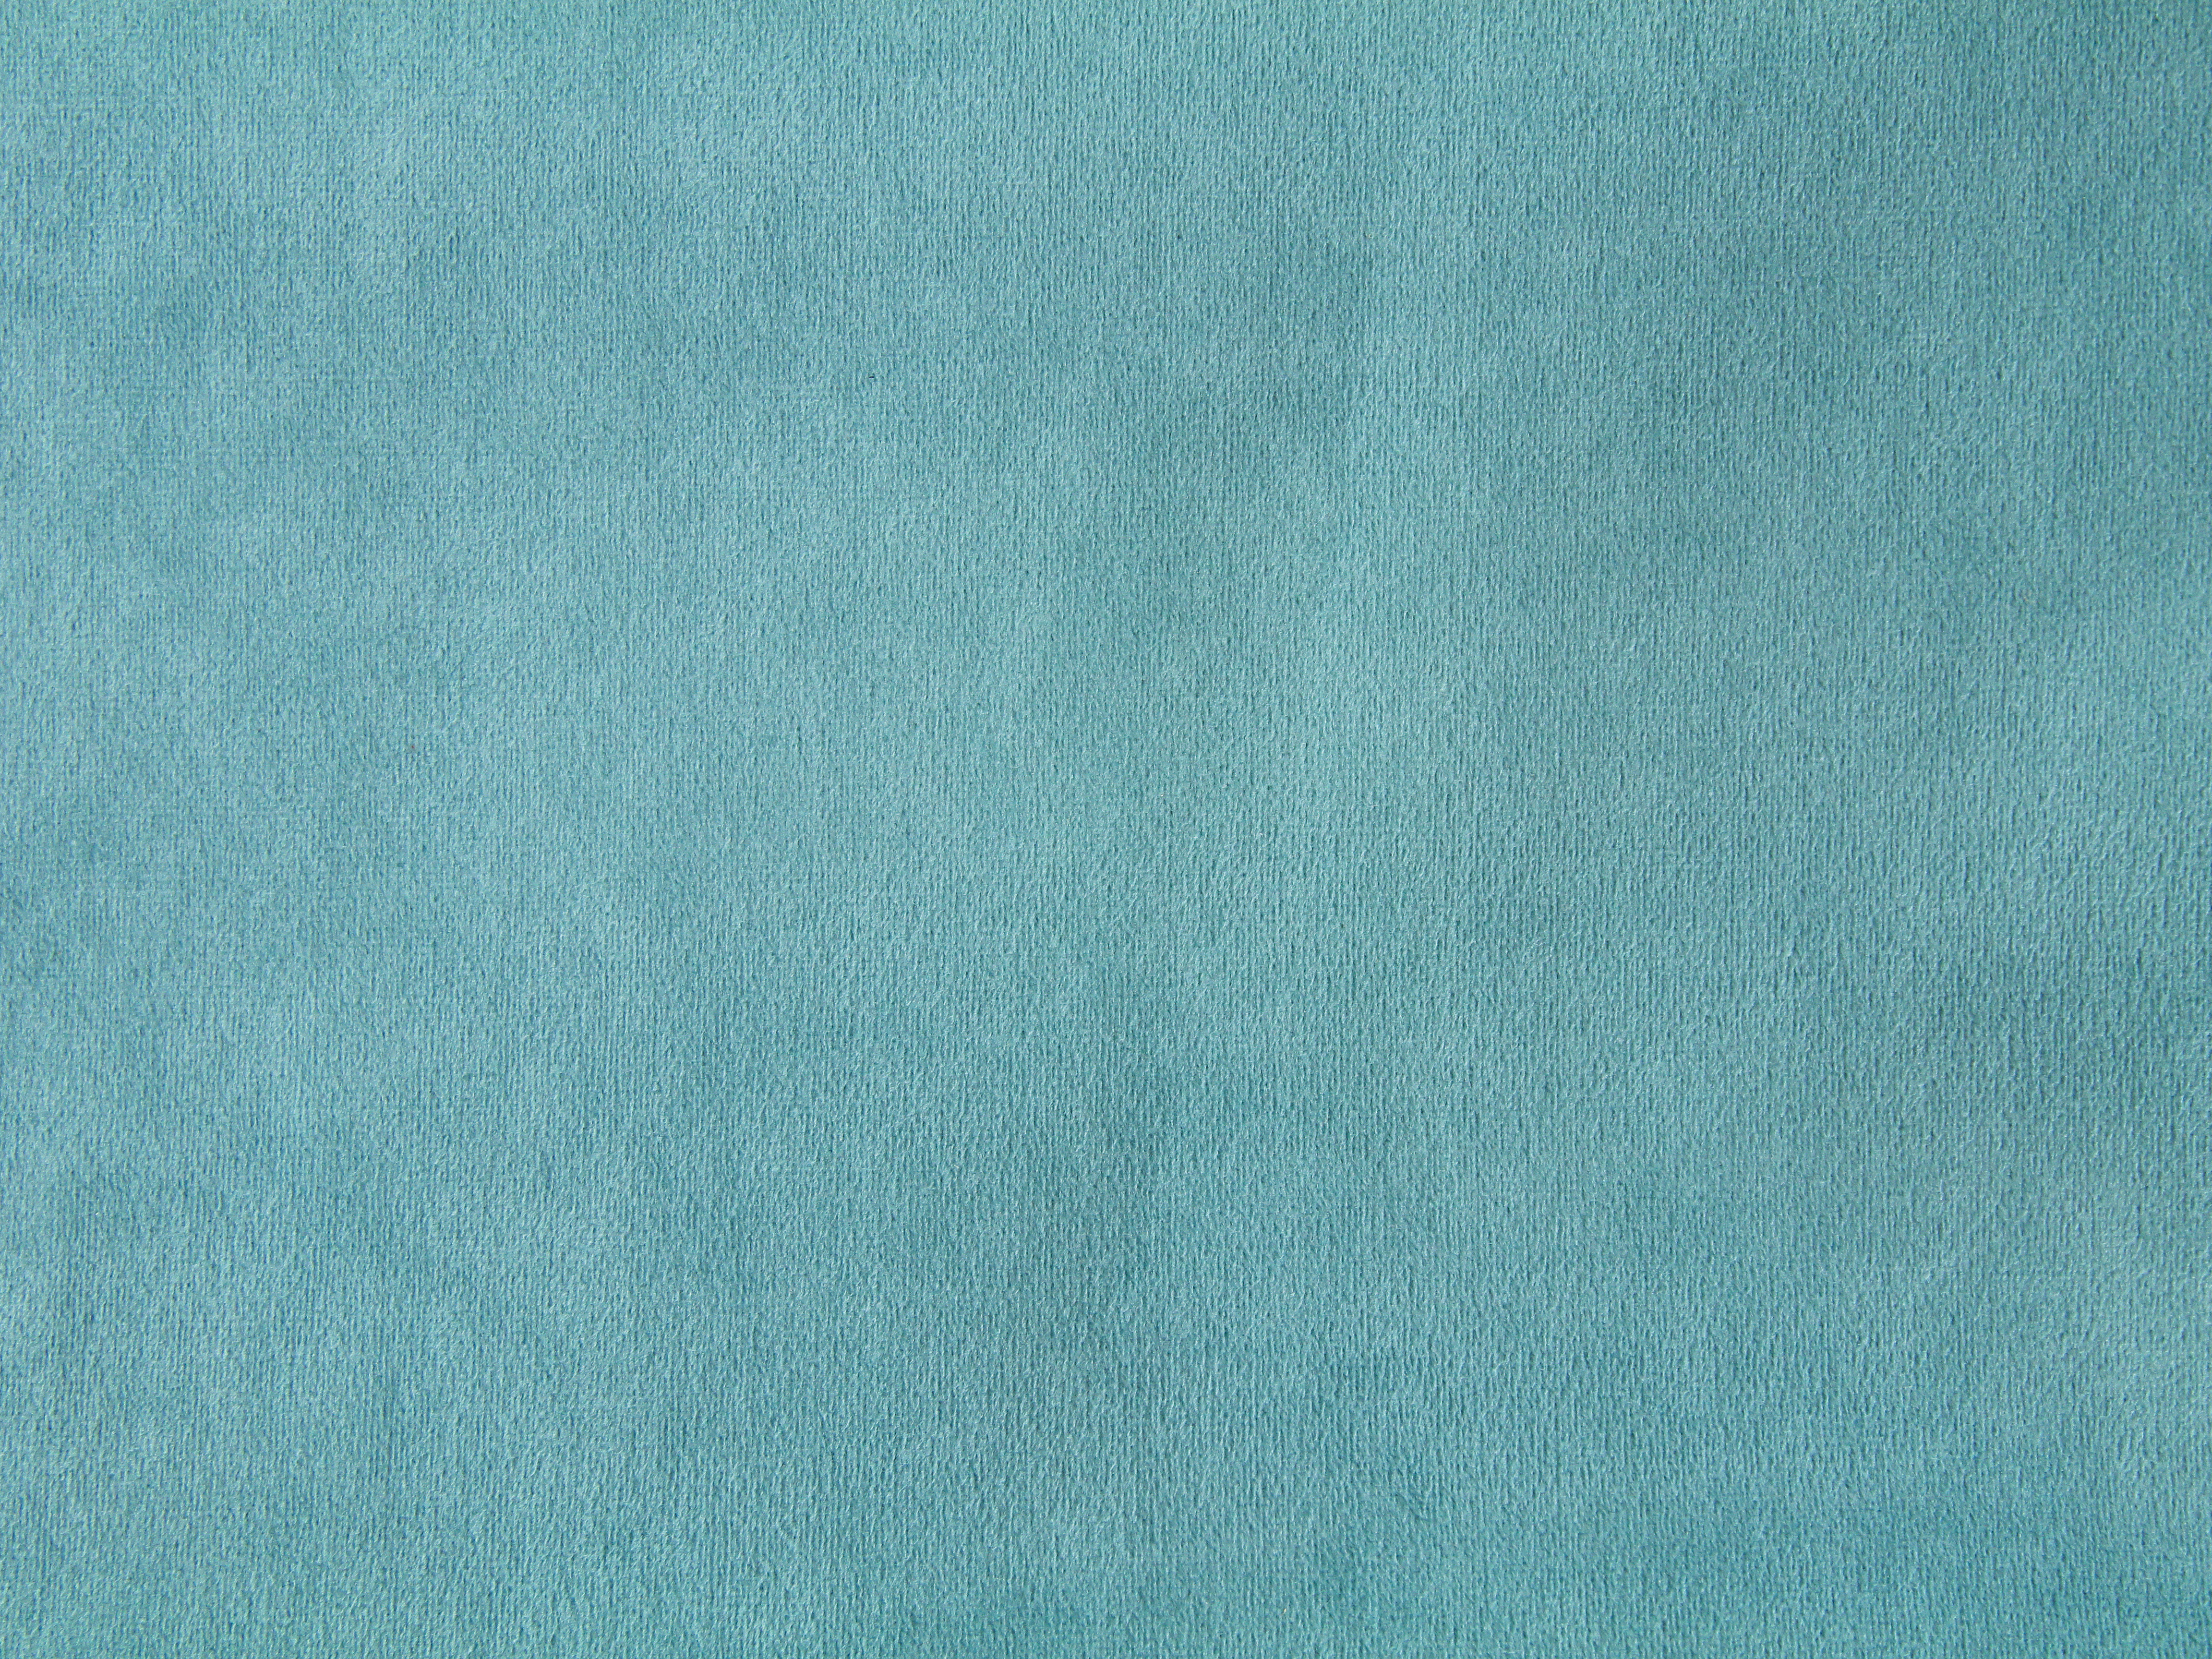 teal fabric texture soft fuzzy suede cloth stock wallpaper ...